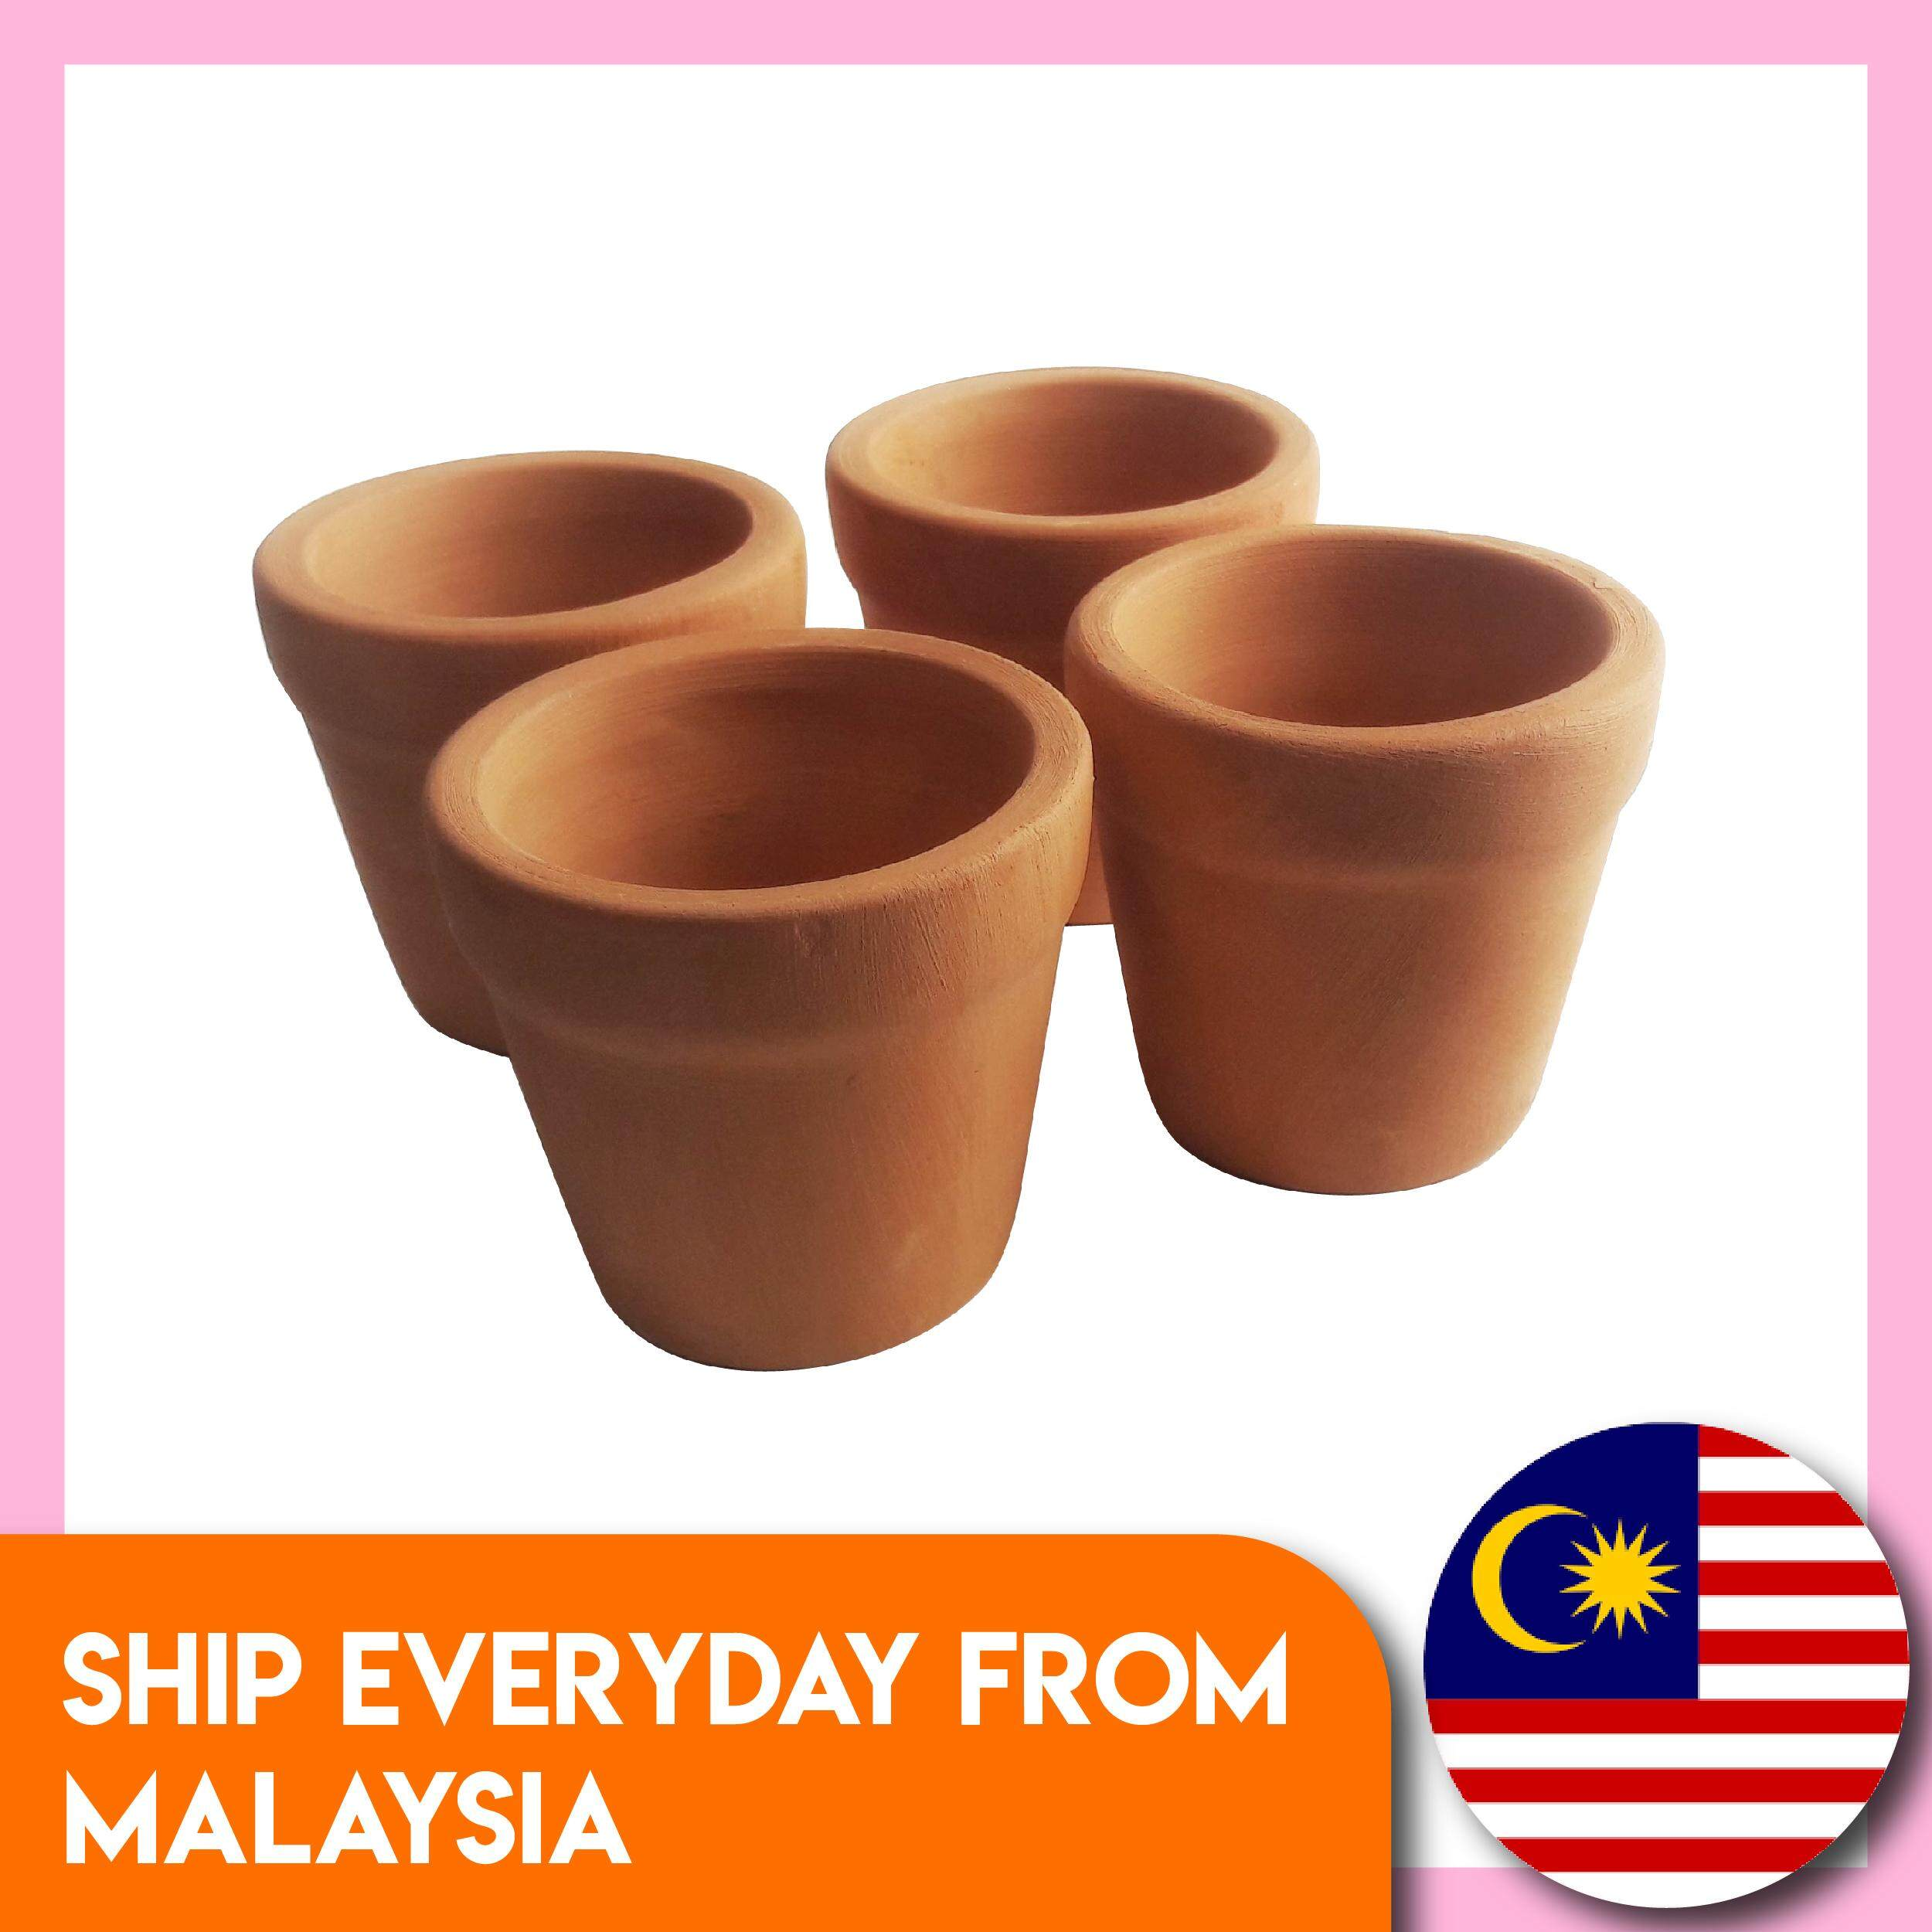 3pcs Terracotta Pots Medium Brown Clay Planter Flower Pots Handmade Plant Container Decorative Succulent Planter Cactus Pot Small Garden Cute Plant Pot Beautiful Succulent Vase Balcony Flower Pot Home Decor